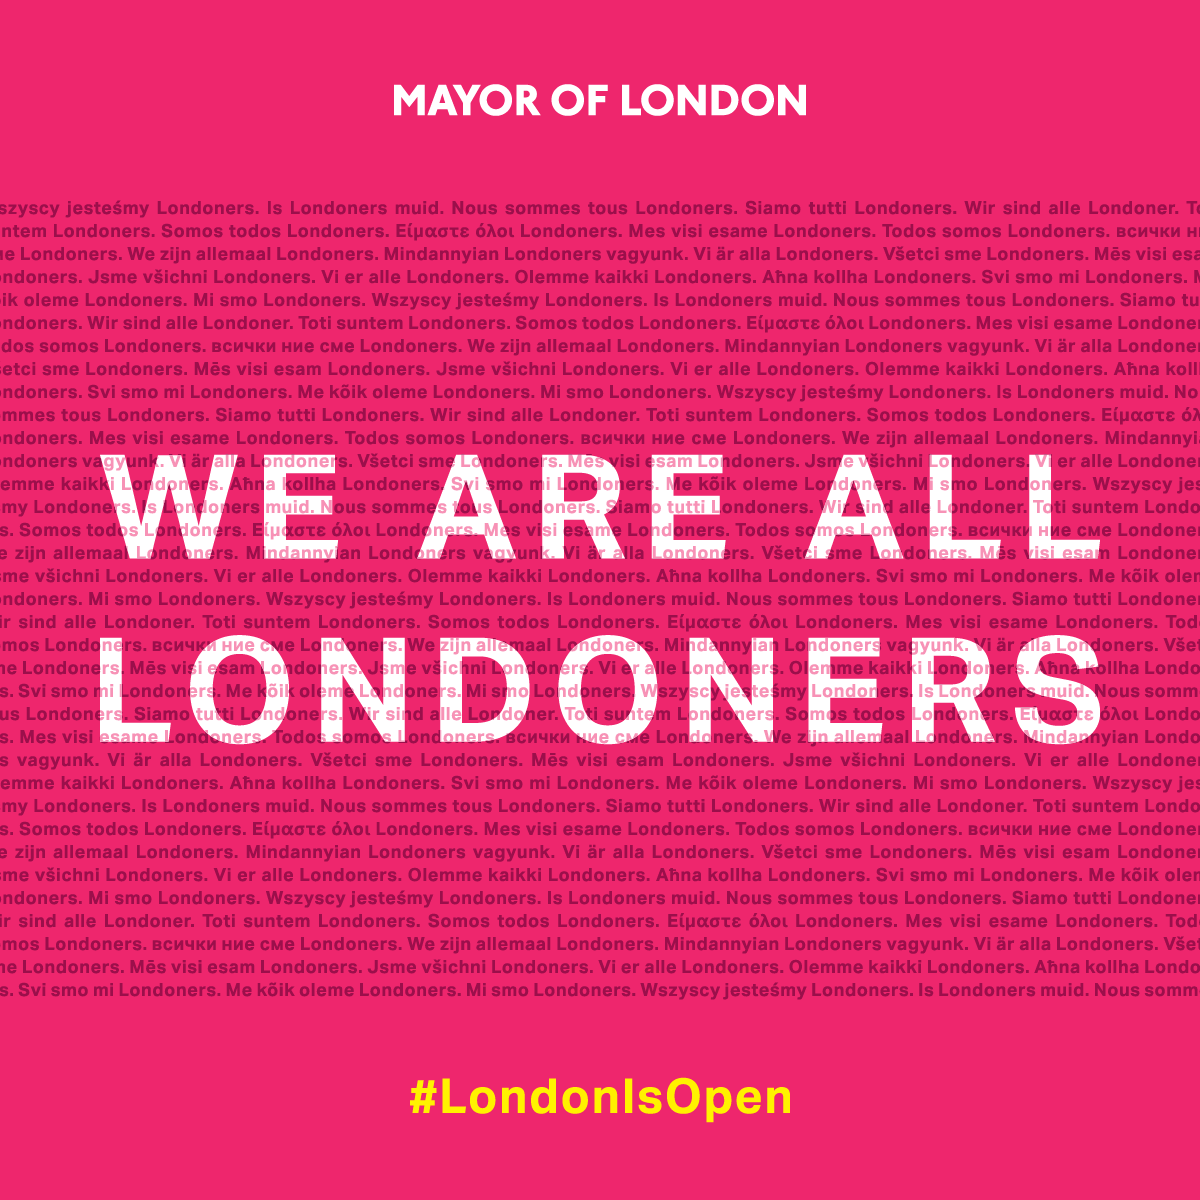 We Are All Londoners: Celebrating our European culture and communities